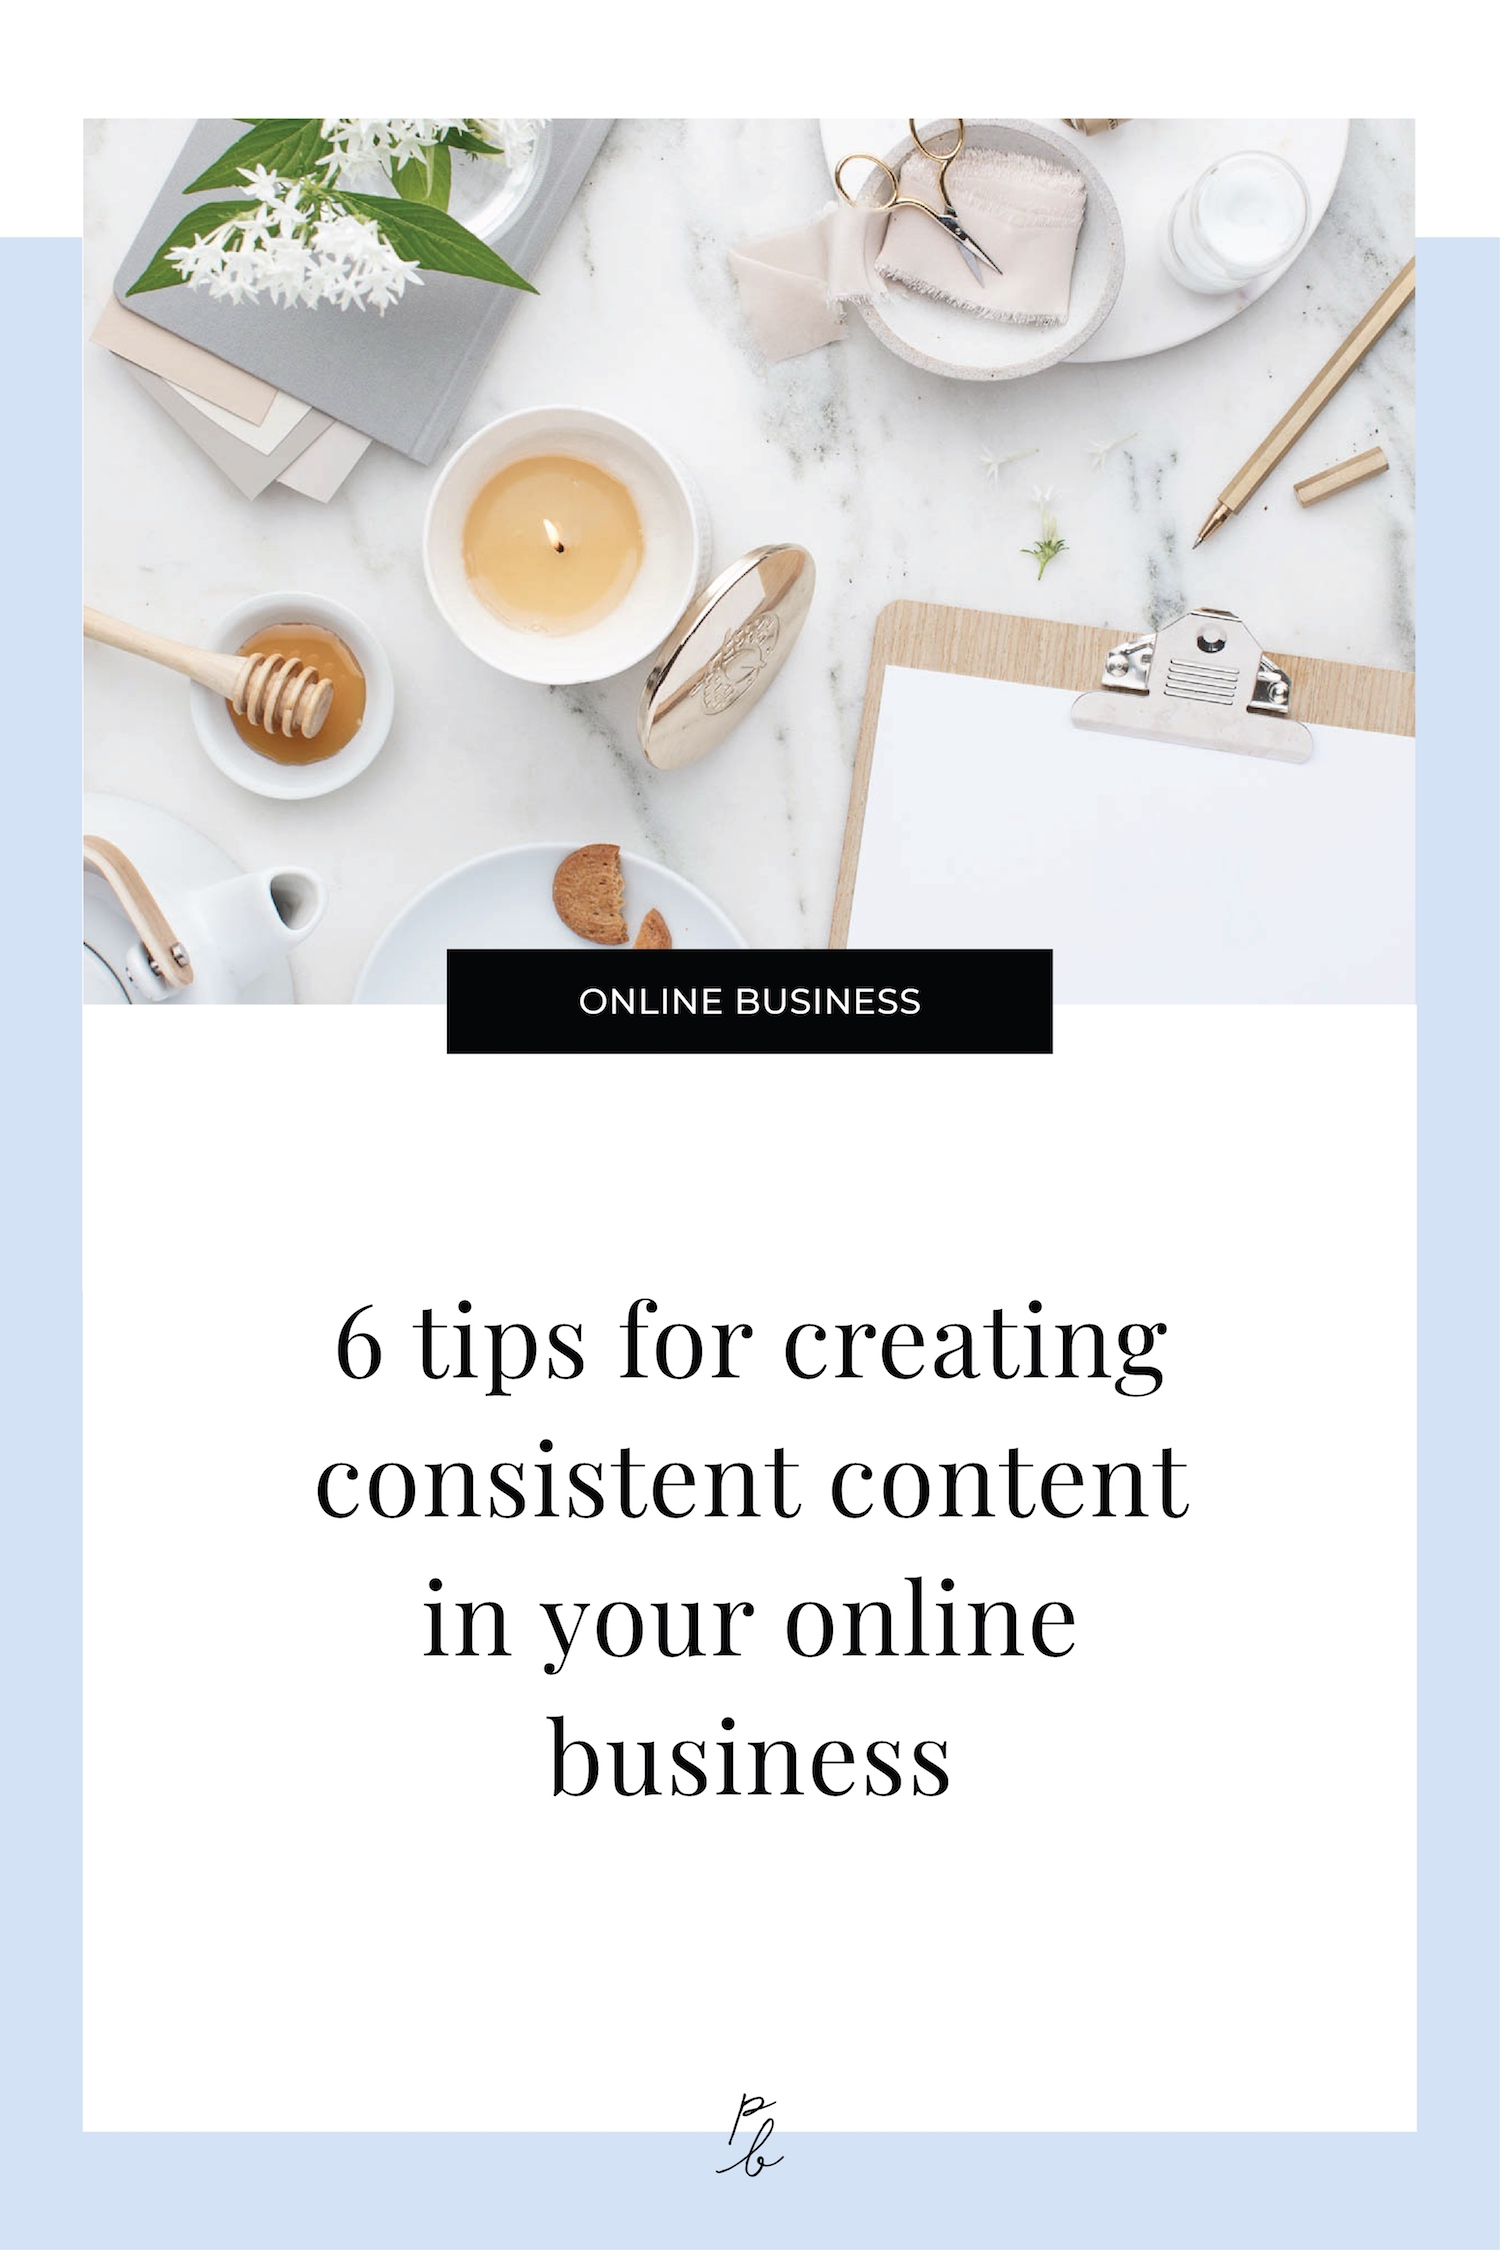 6 tips for creating consistent content in your online business-54.jpg